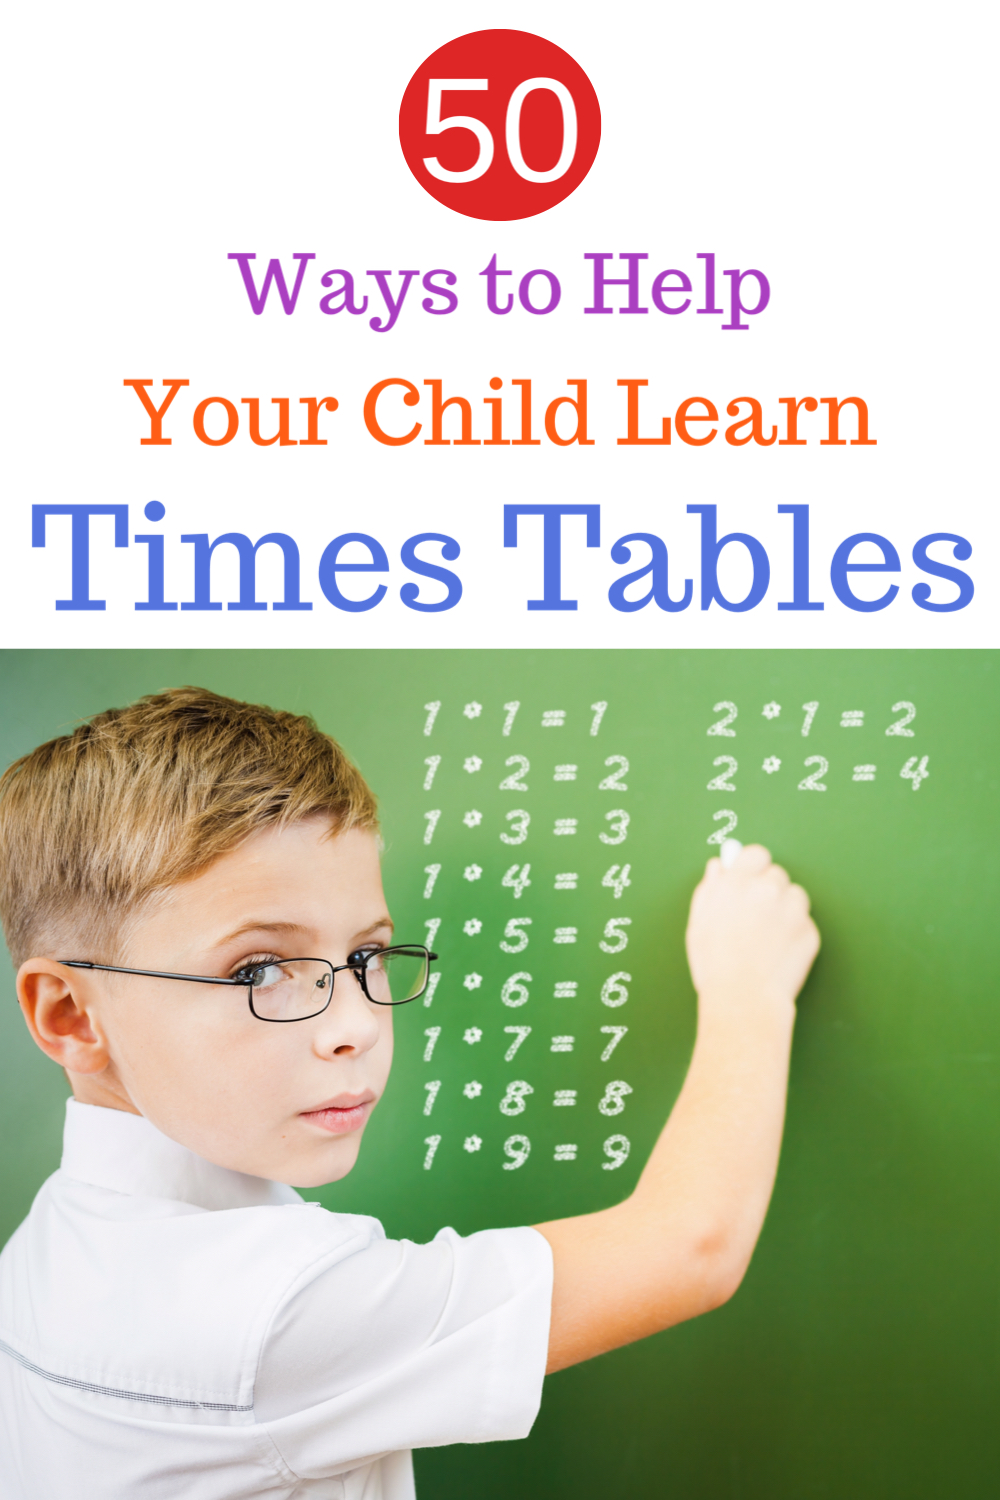 50 ways to help your child learn times tables